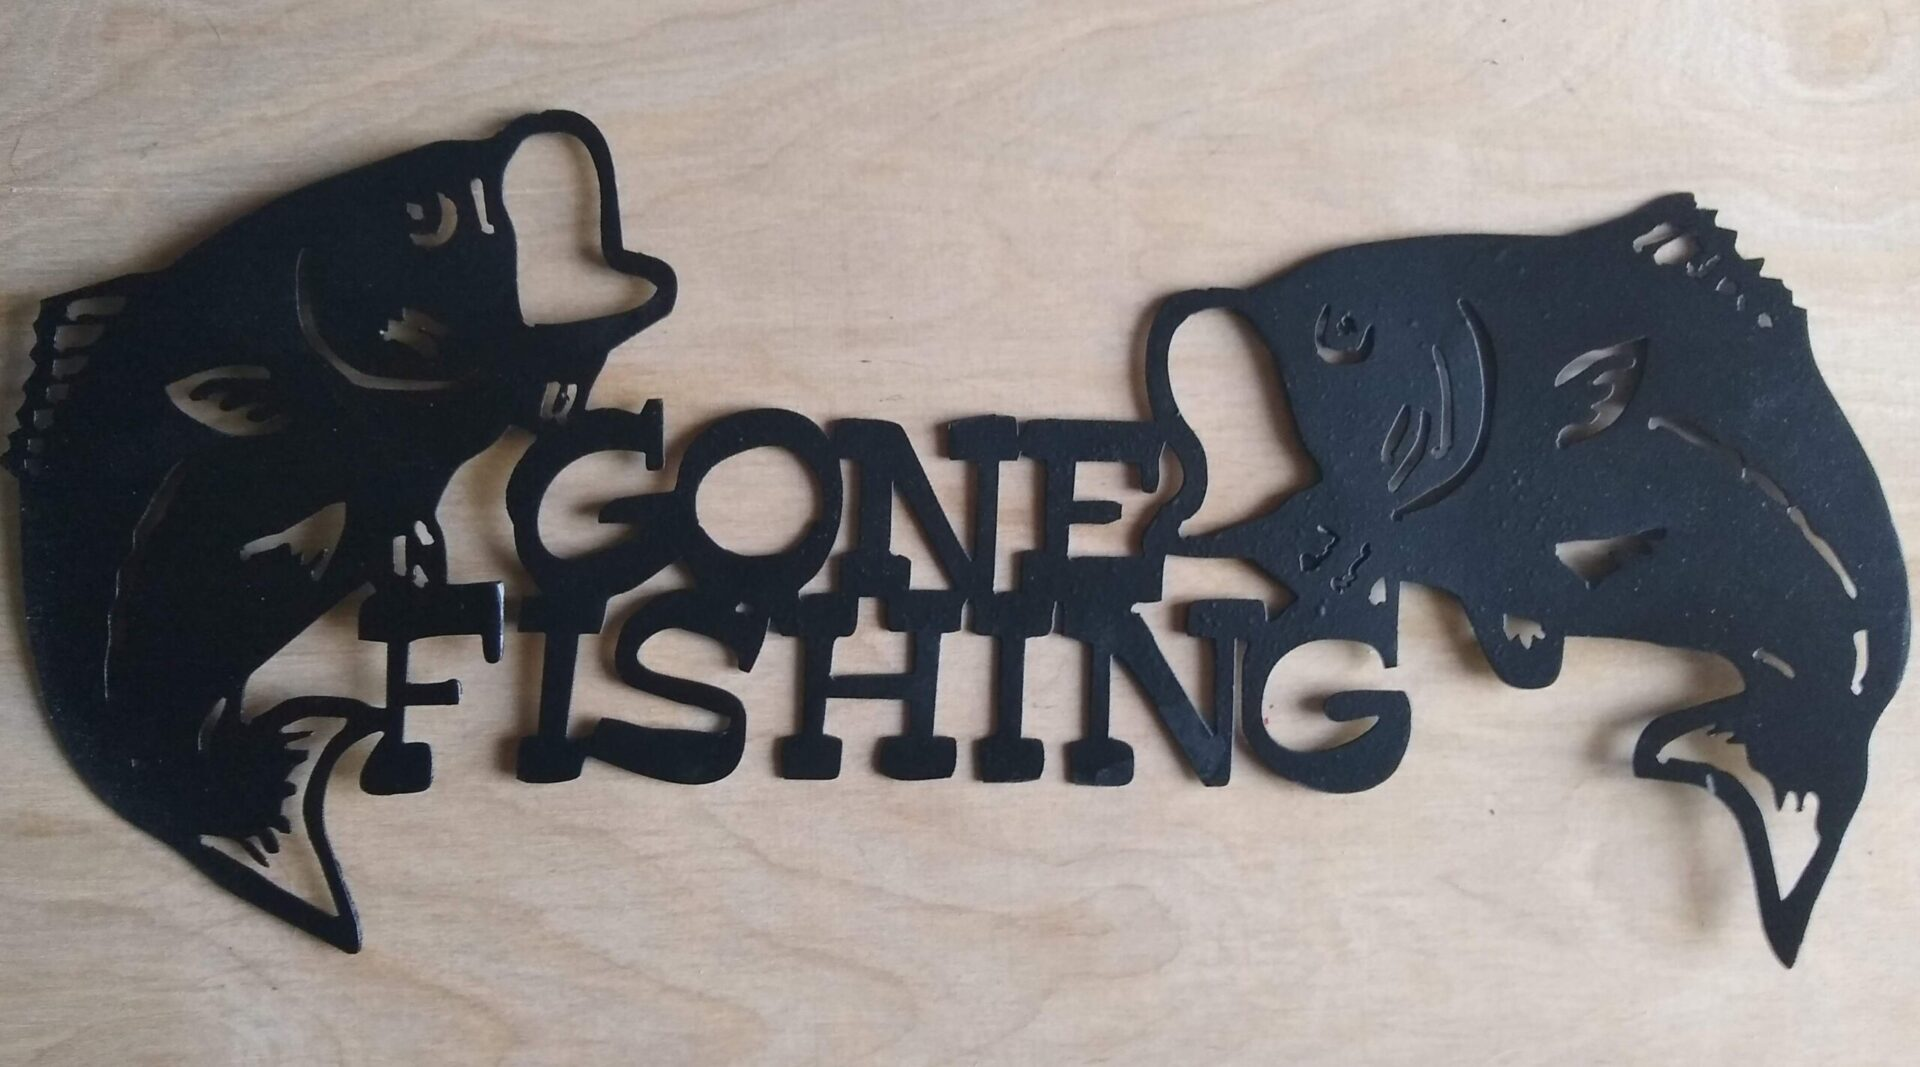 gone fishing event decor from fadds events in nashville tn